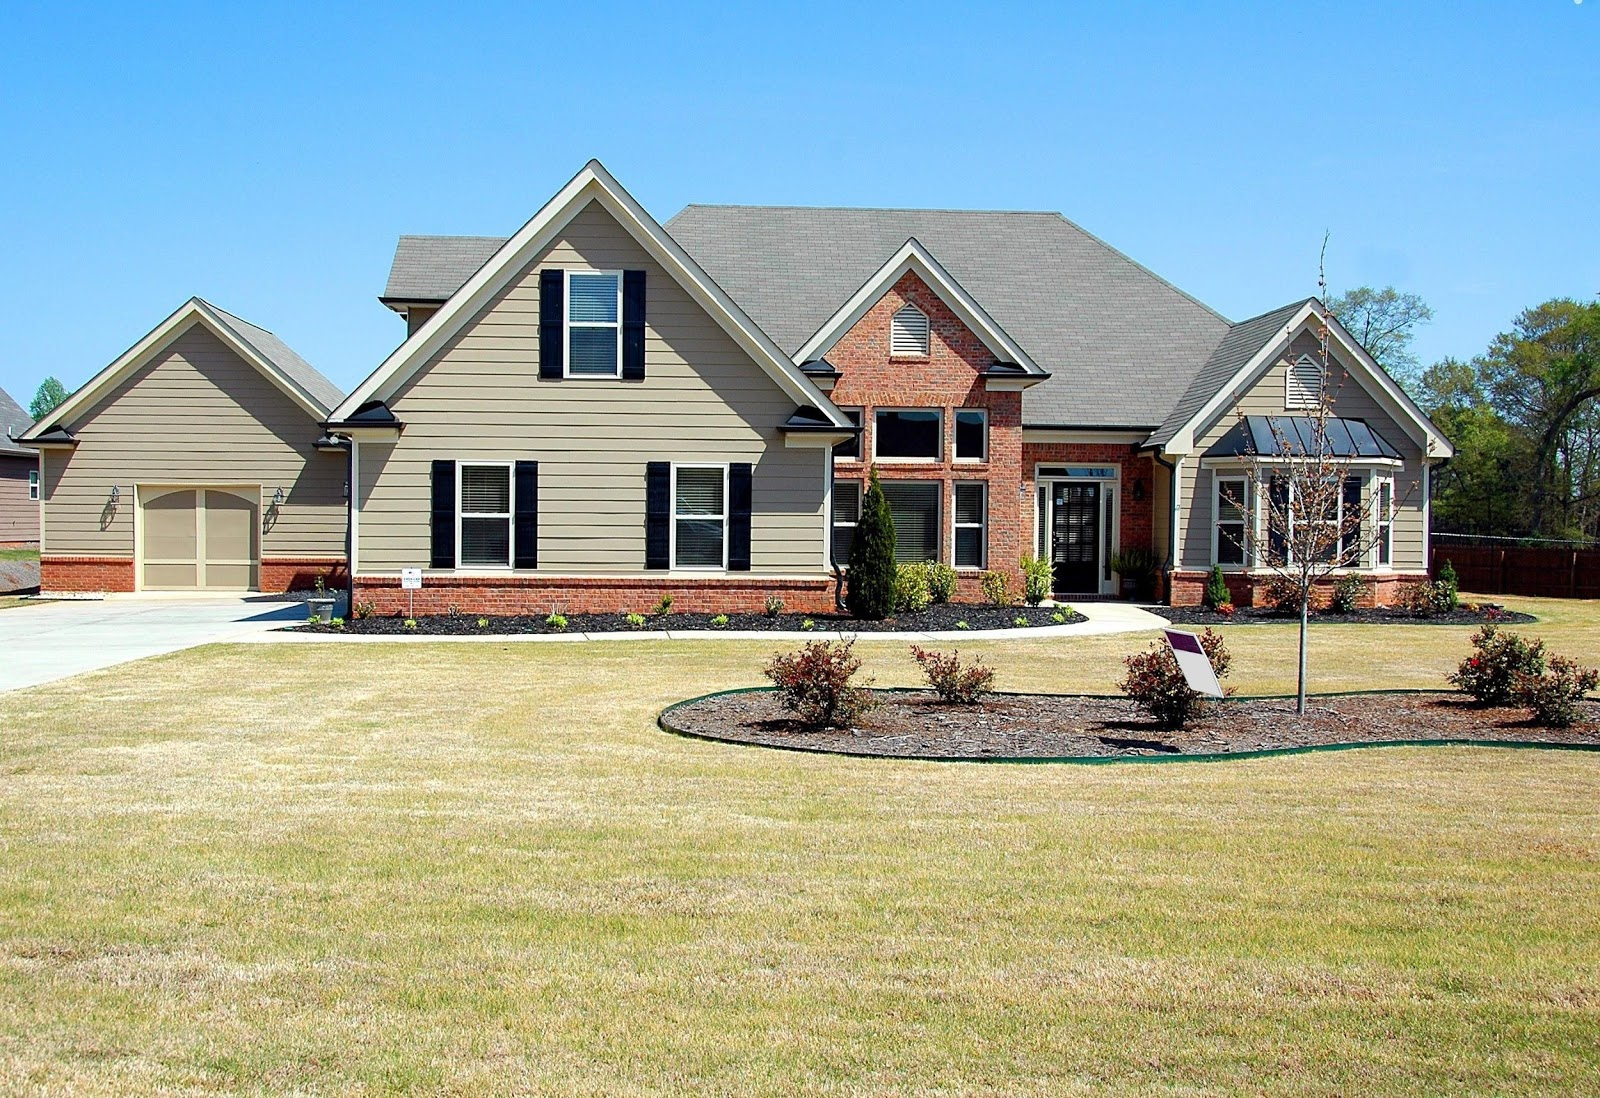 How to Buy Your Dream Home When You Don't Have a Strong Financial Record